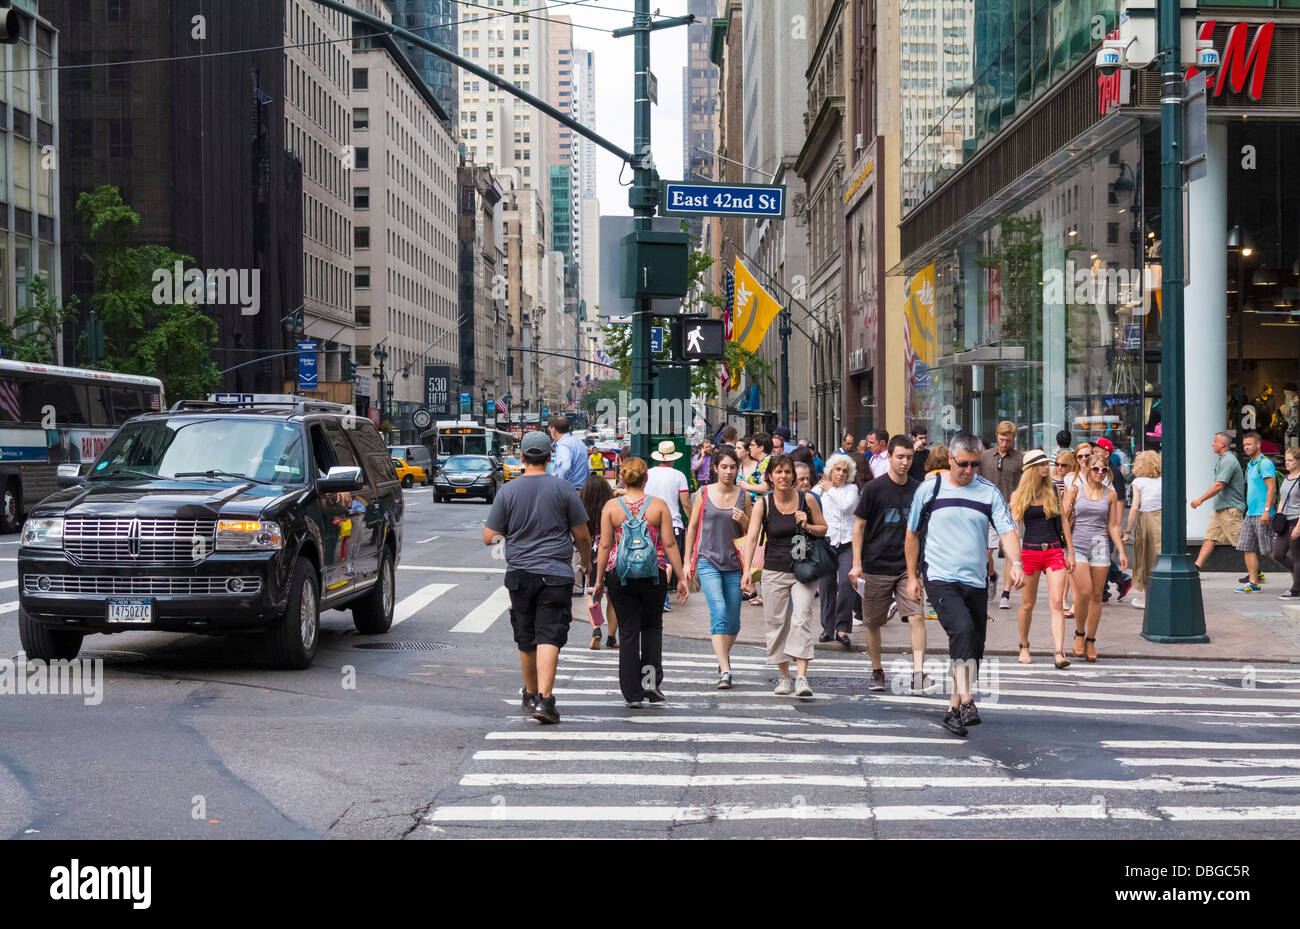 Manhattan street scene - people walking across a downtown ...